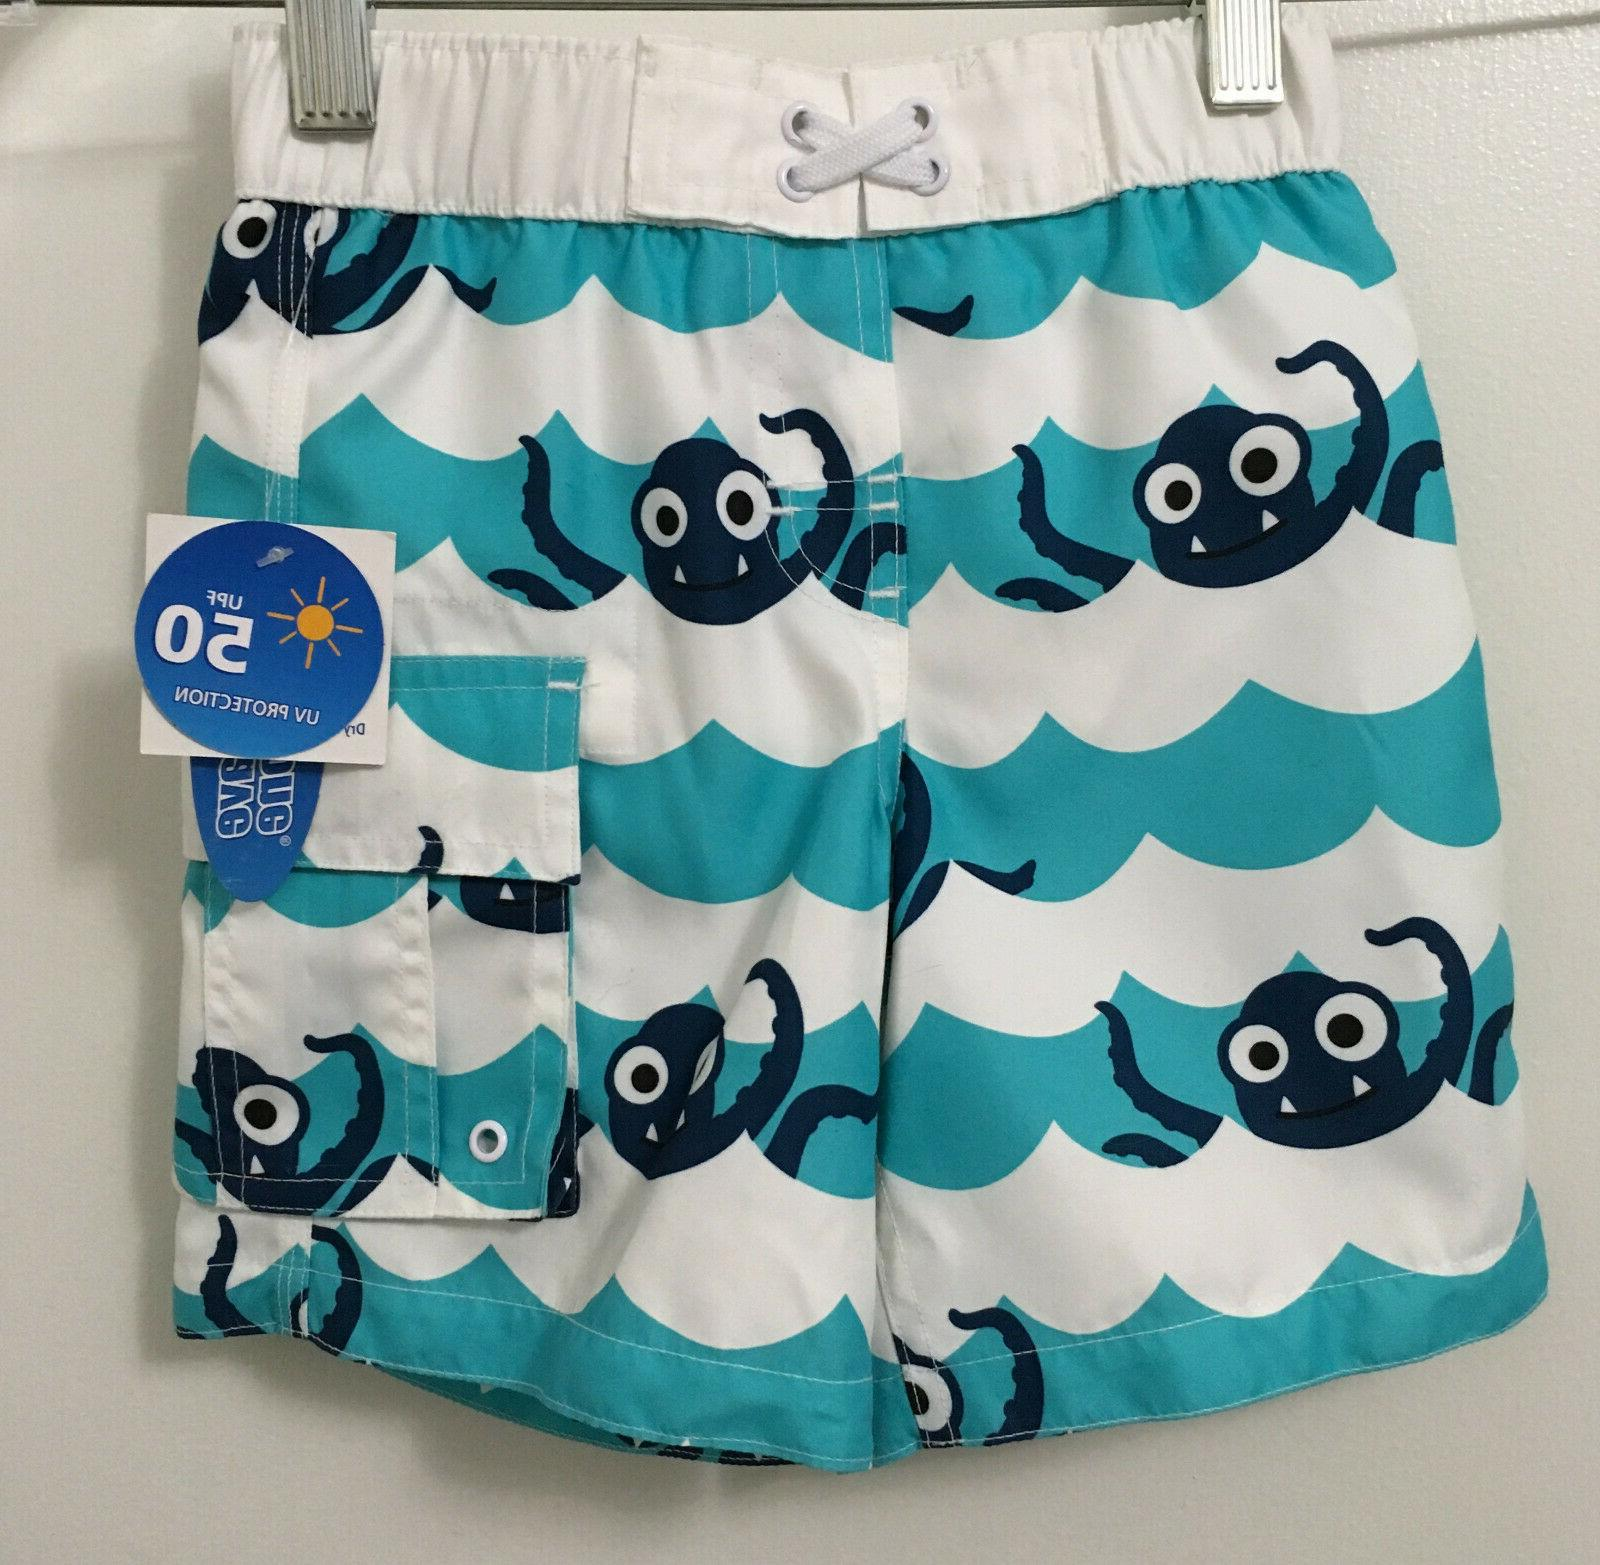 3t swimming trunks for a boy